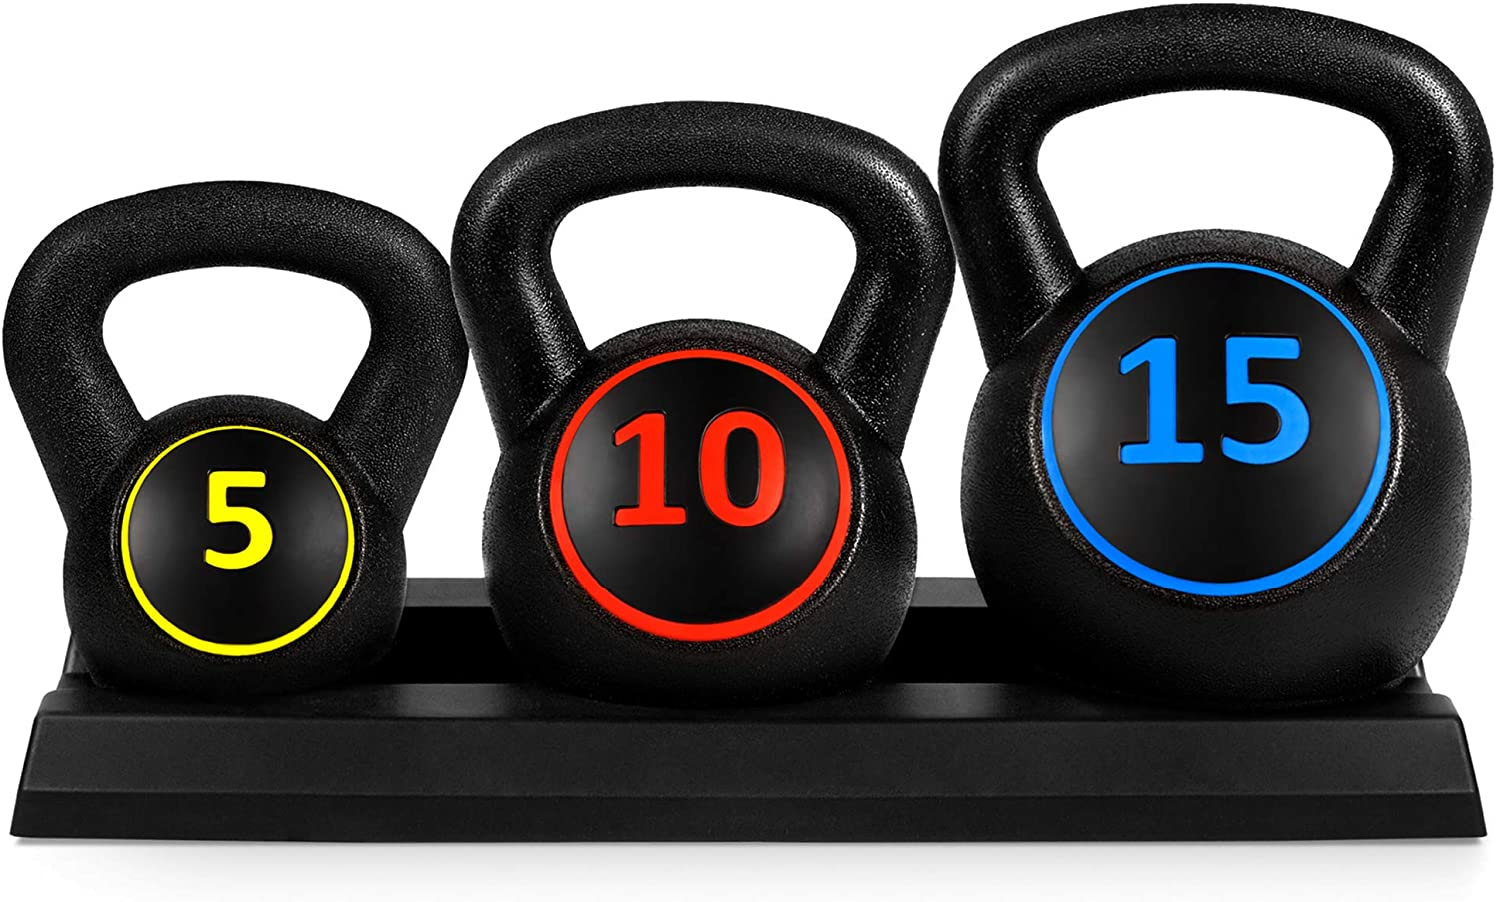 Best Choice Products Kettlebell Set with 5, 10 and 15 pounds